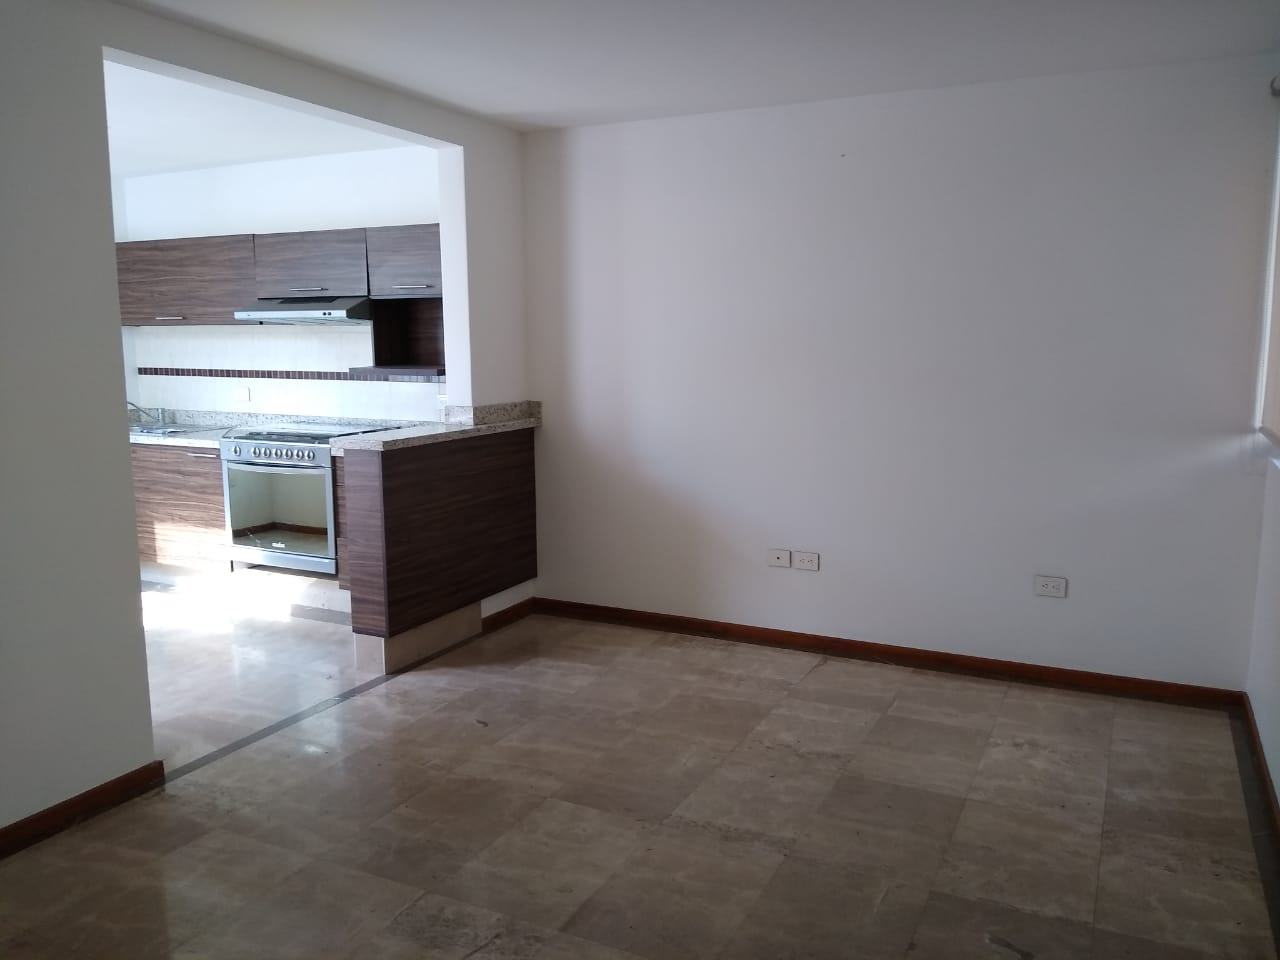 2 Rooms Rooms,Departamentos,Renta,1071